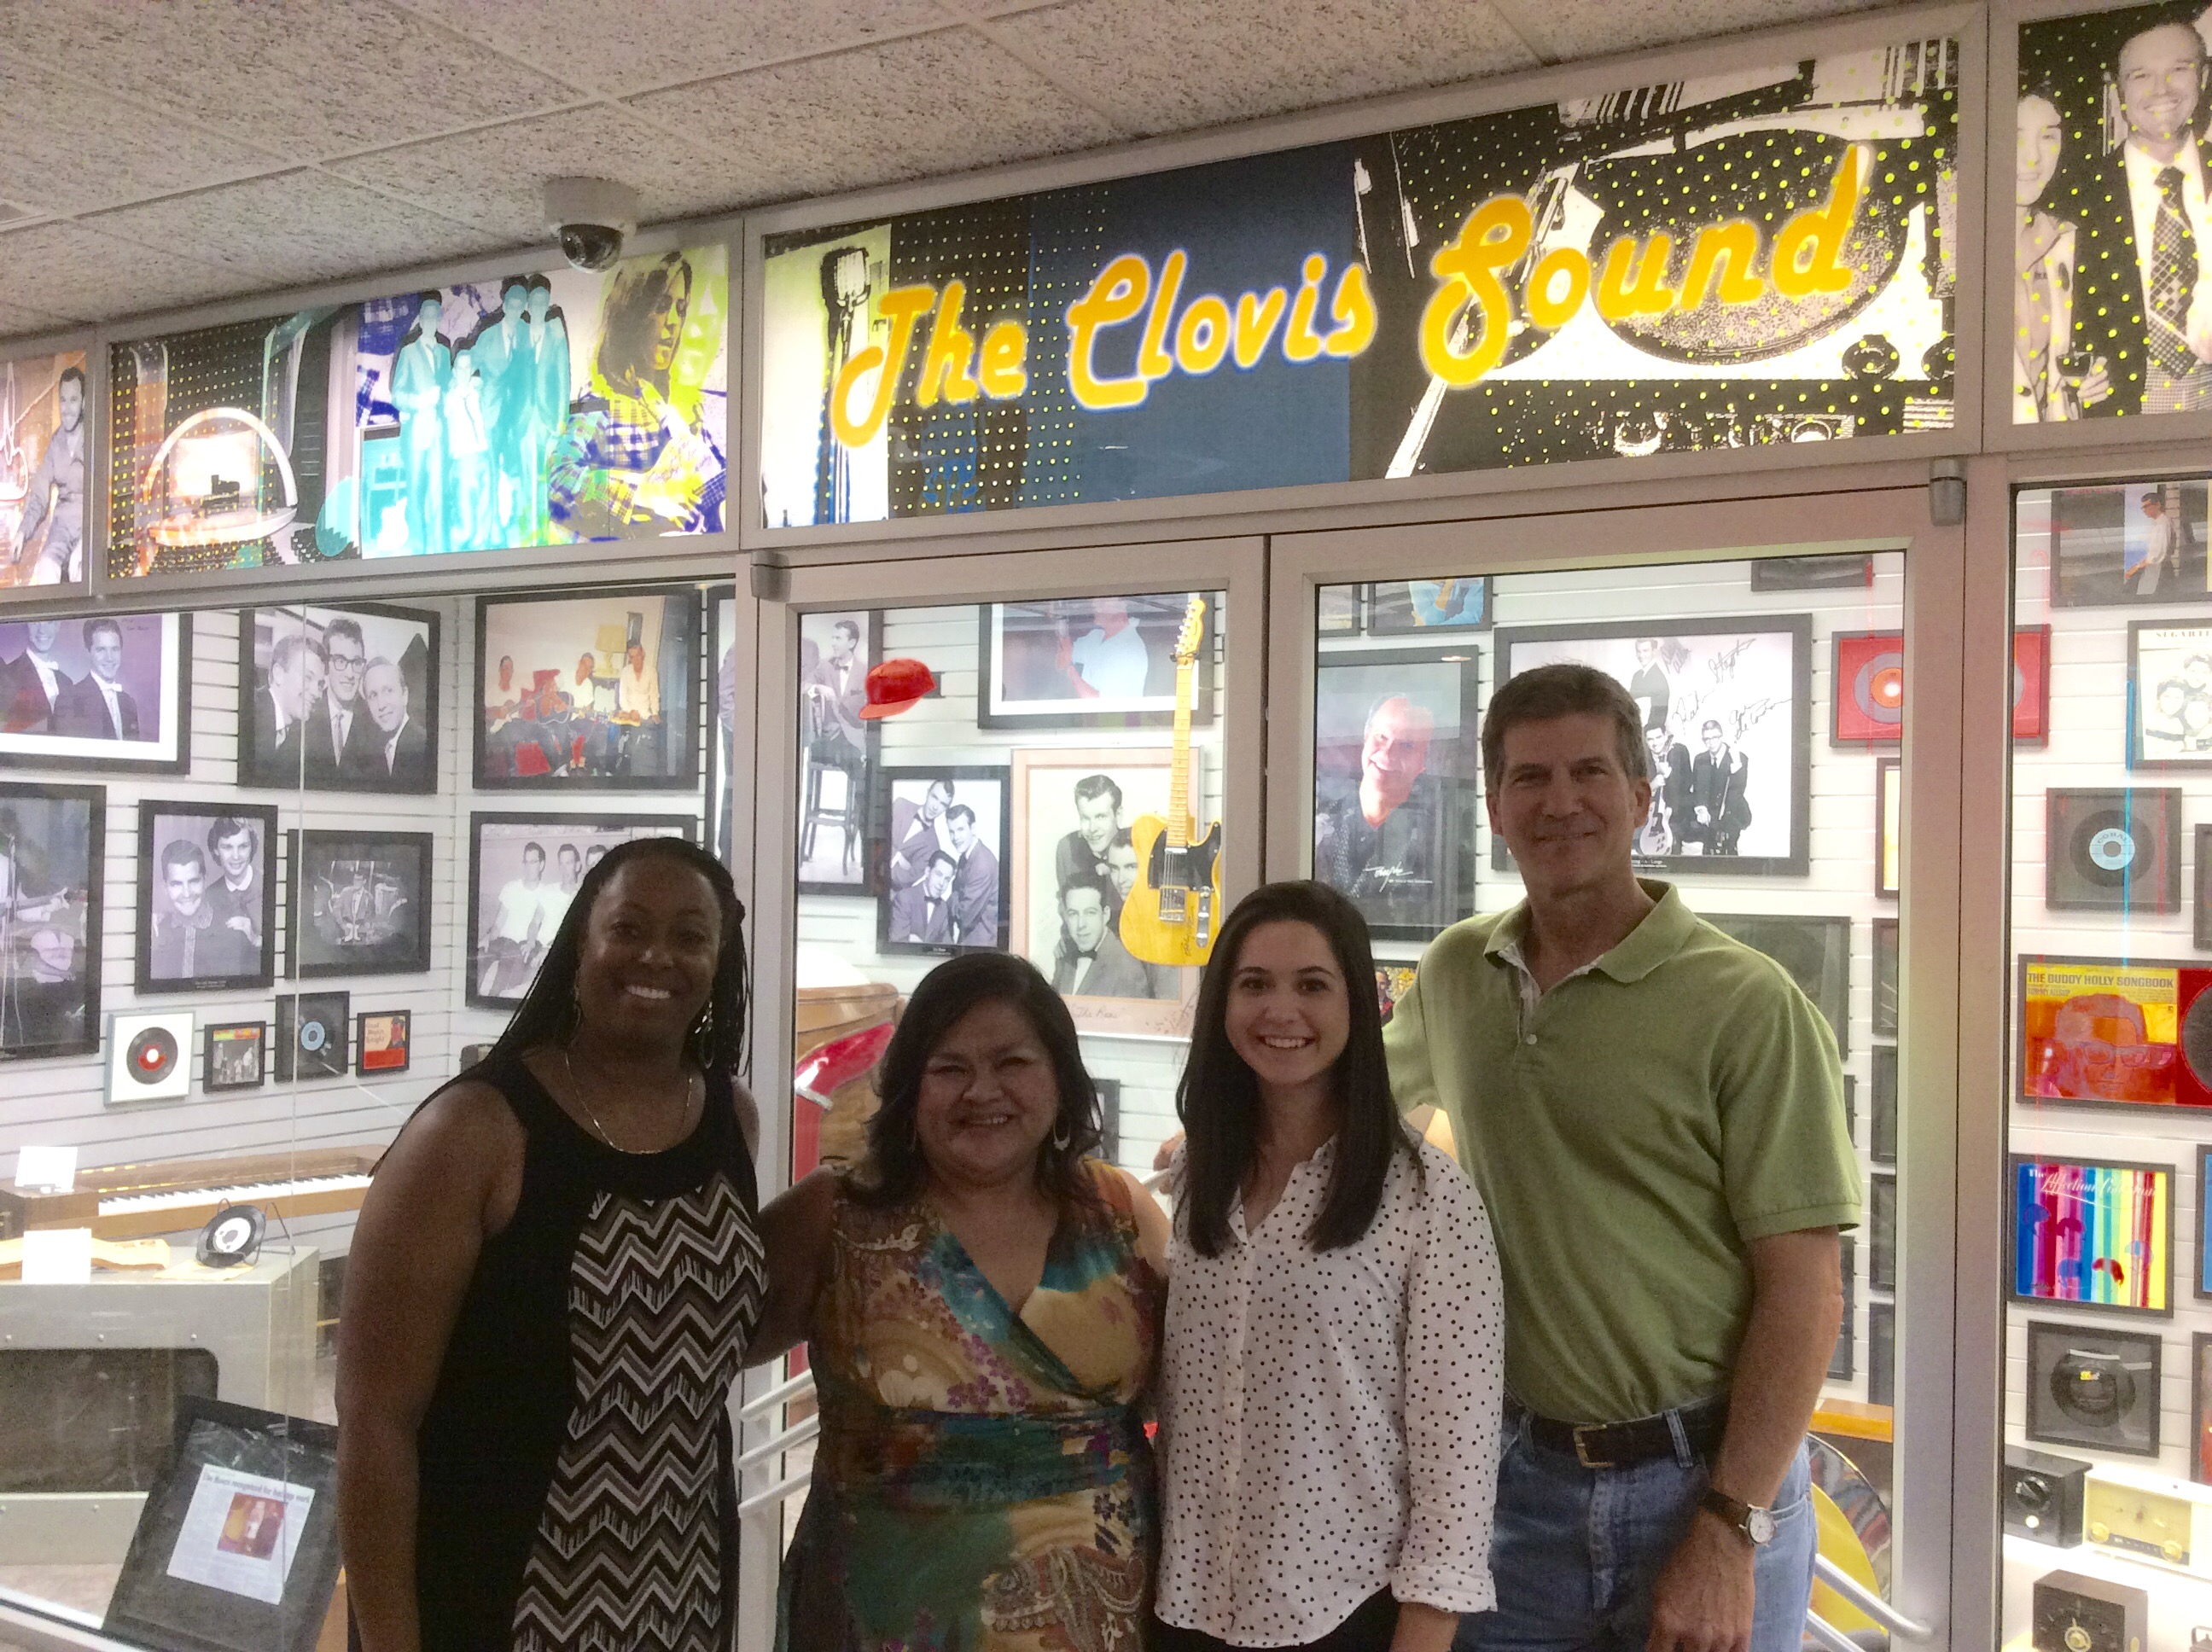 Lunch for Clovis YED will take place in the Clovis Sound Museum, where OC Intern Kelsey Garcia and OC NM Coordinator meet with officials from Clovis Chamber of Commerce